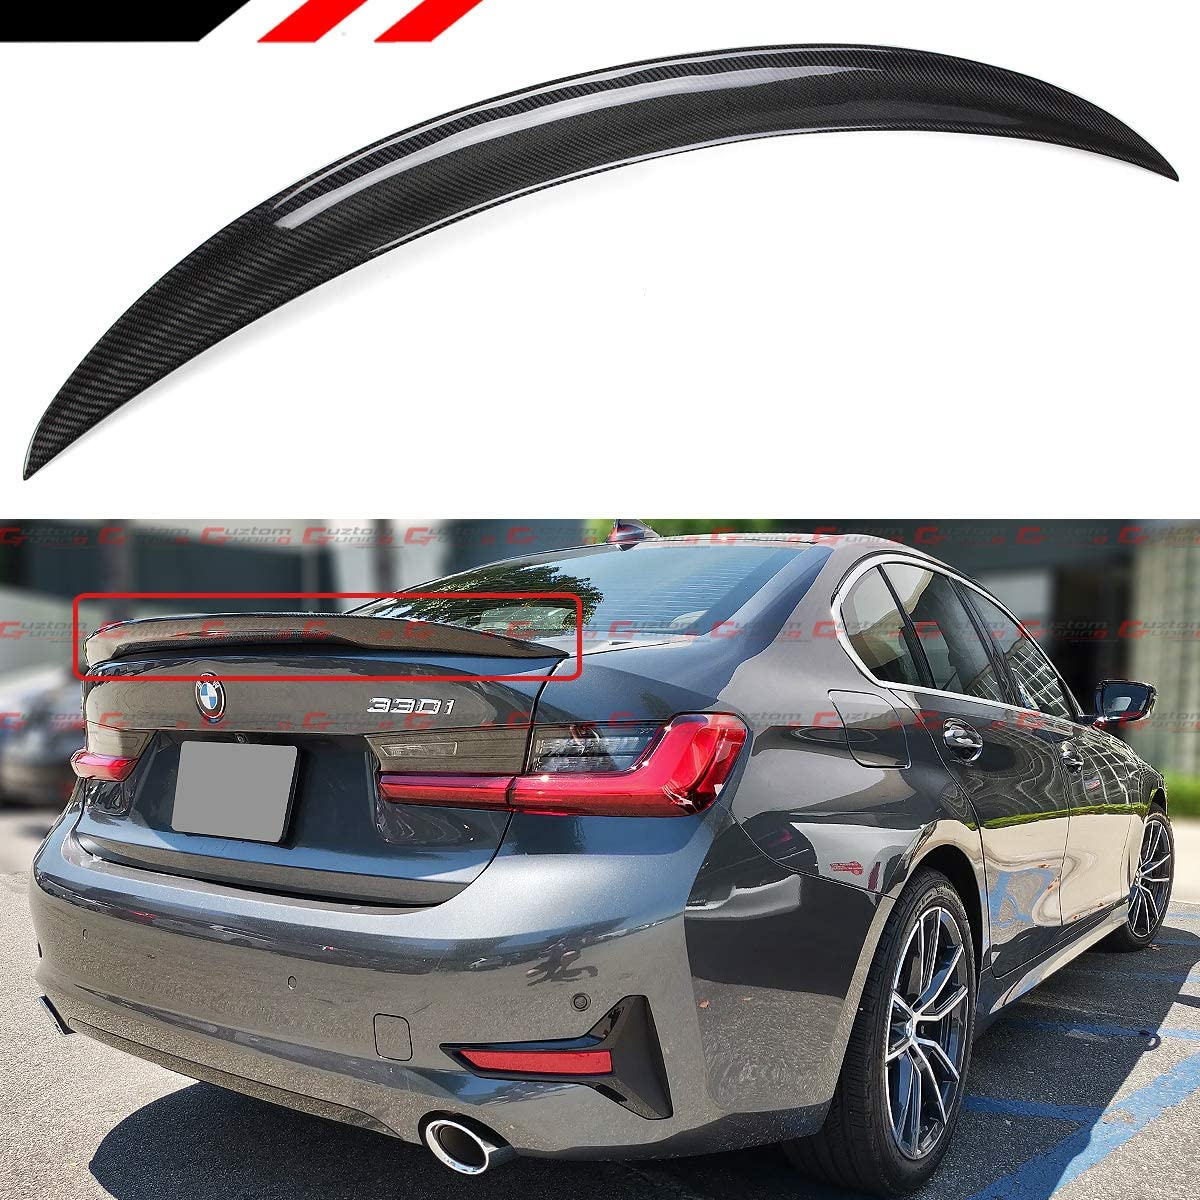 Compatible with BMW 3 Series G20 Sedan 2020-2021 316i 318i 320i 328i 330i 335i 340i Eppar New Protective Rear Splitters Only MP Bumper Carbon Look